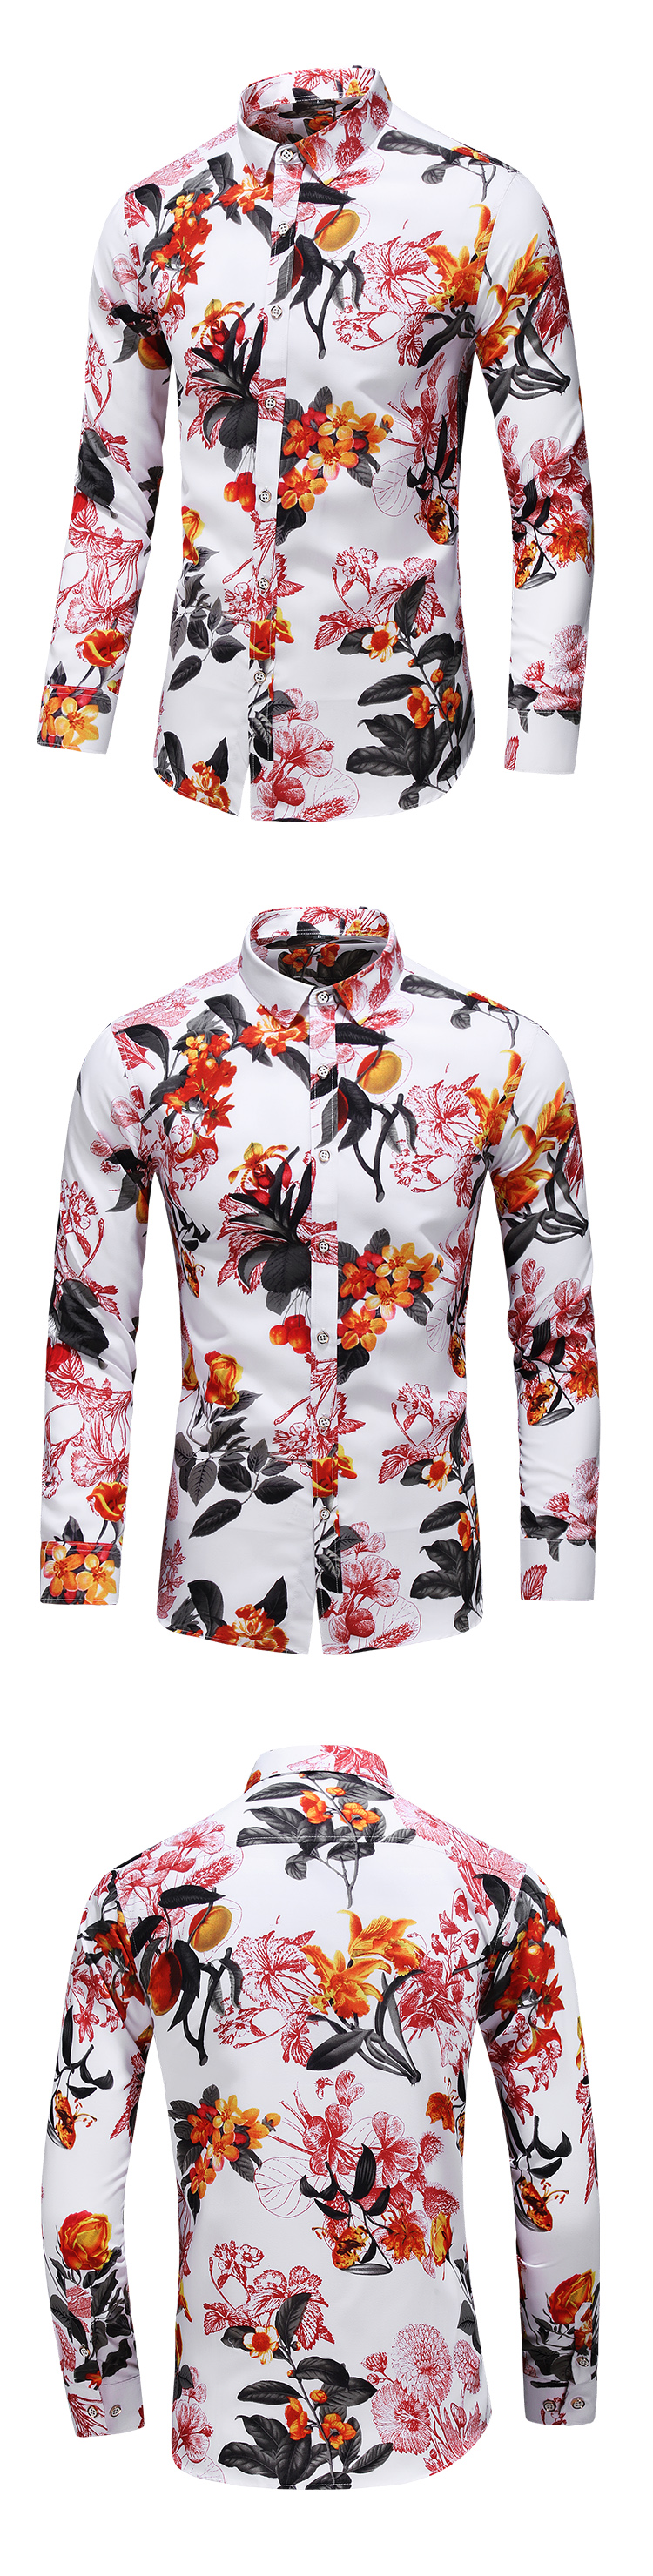 HTB1EdXeap67gK0jSZPfq6yhhFXad - Casuals Shirt Men Autumn New Arrival Personality Printing Long Sleeve Shirts Mens Fashion Big Size Business Office Shirt 6XL 7XL